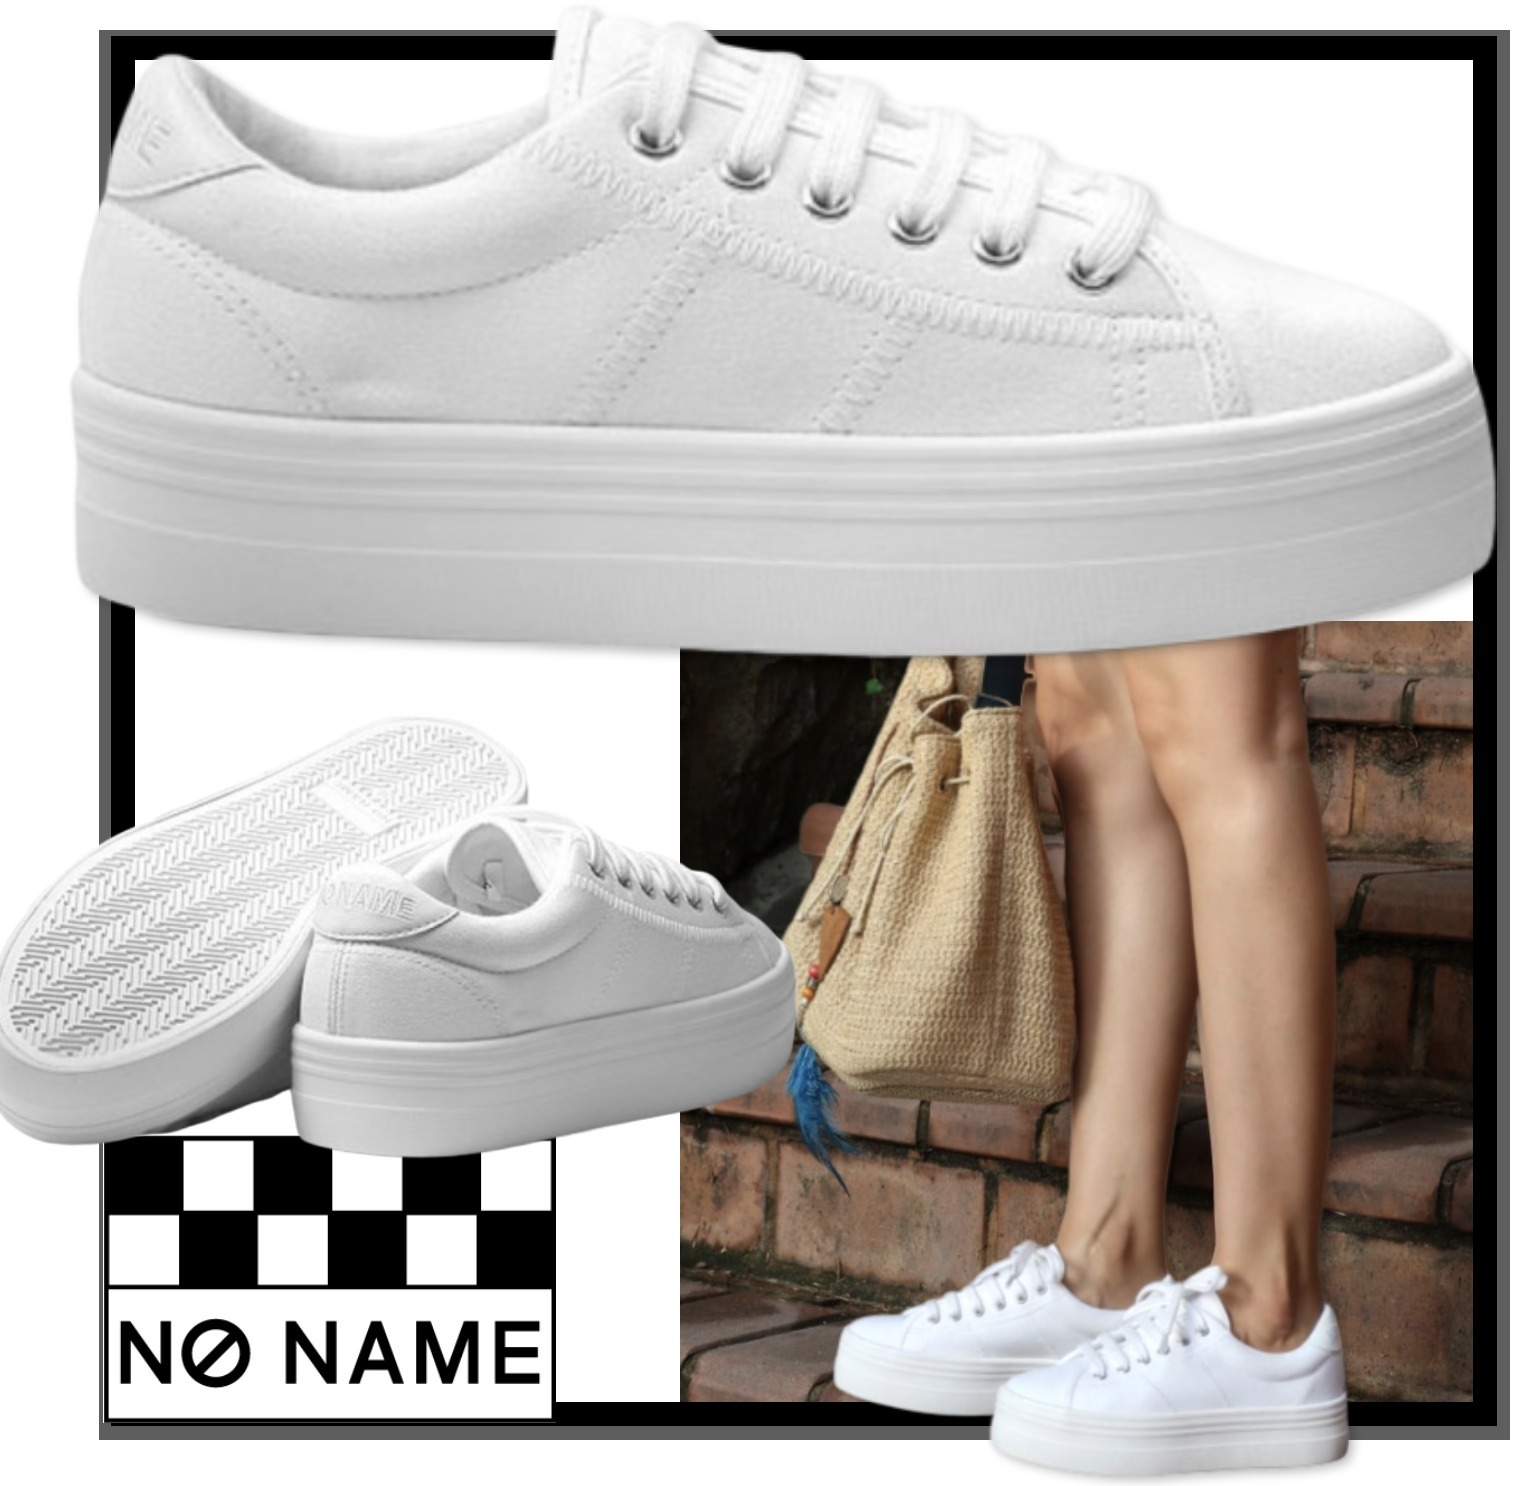 shop no name shoes